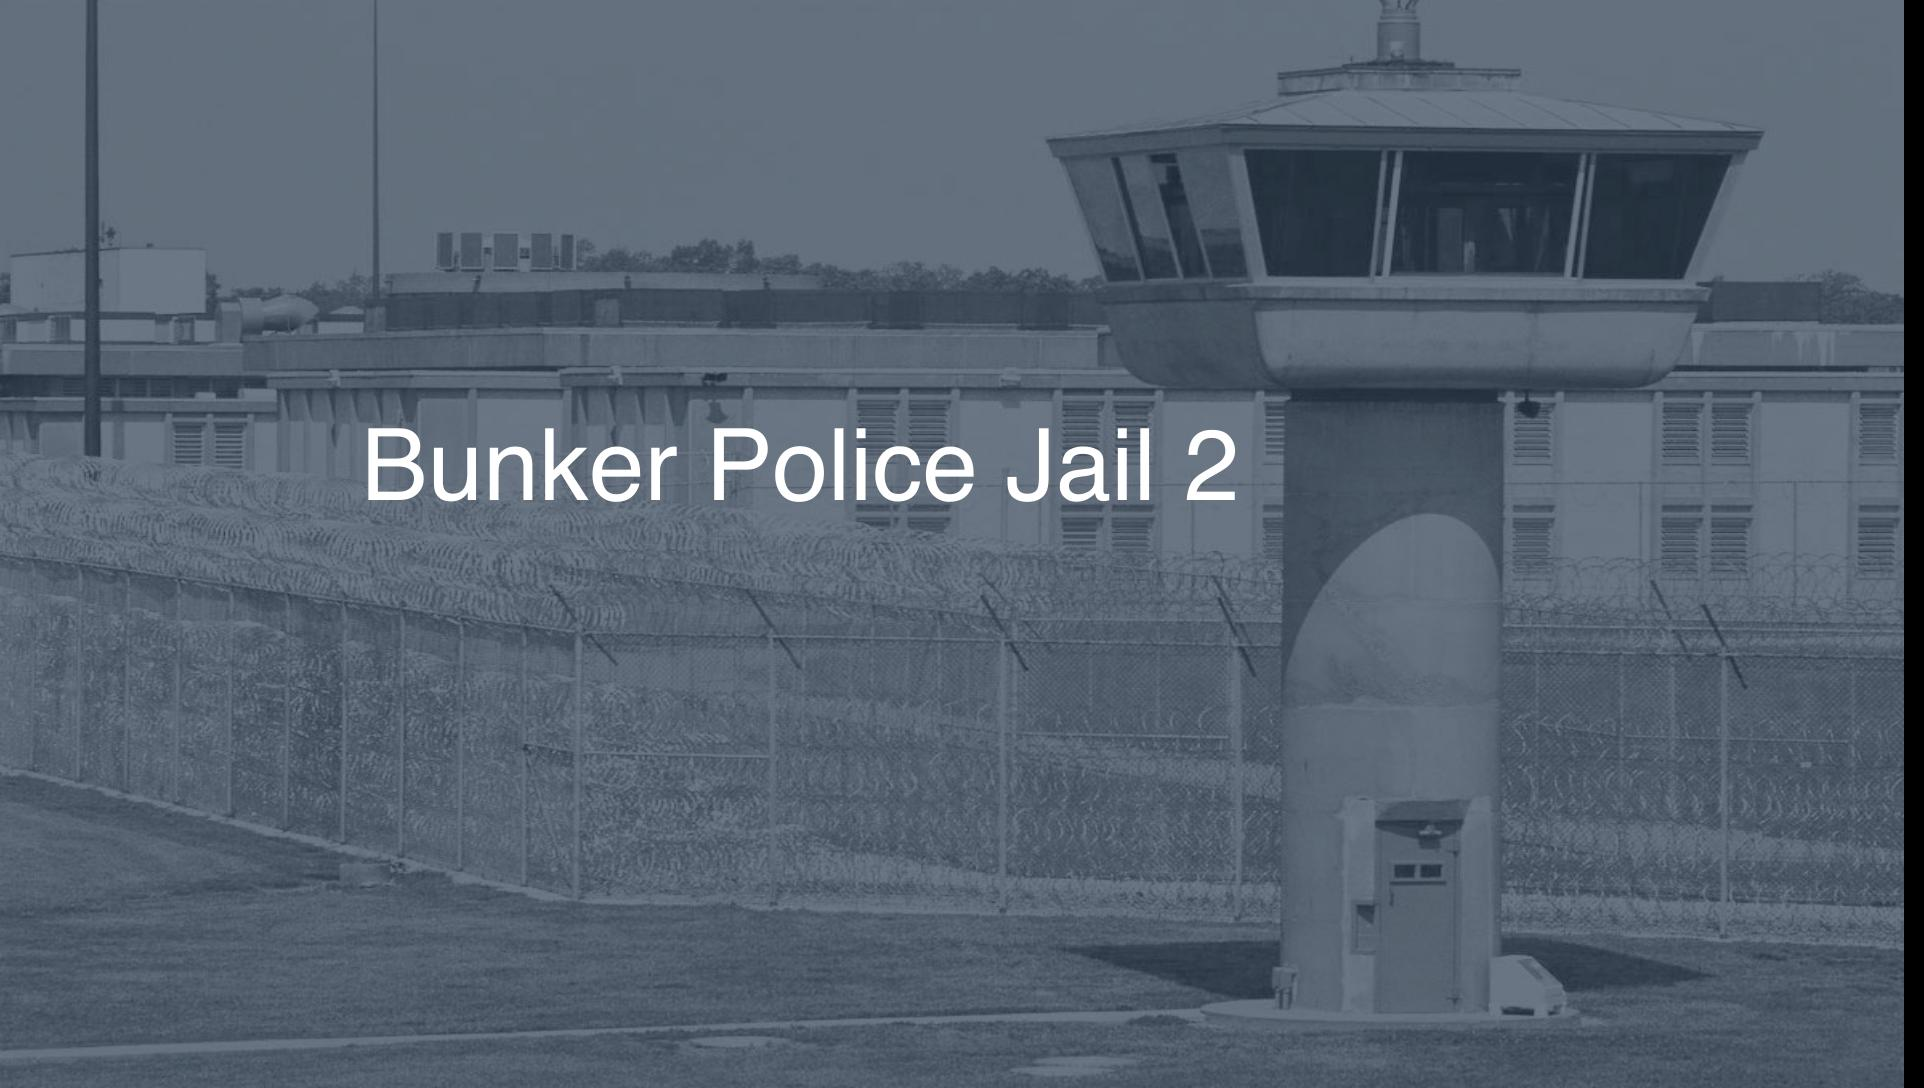 Bunker Police Jail correctional facility picture